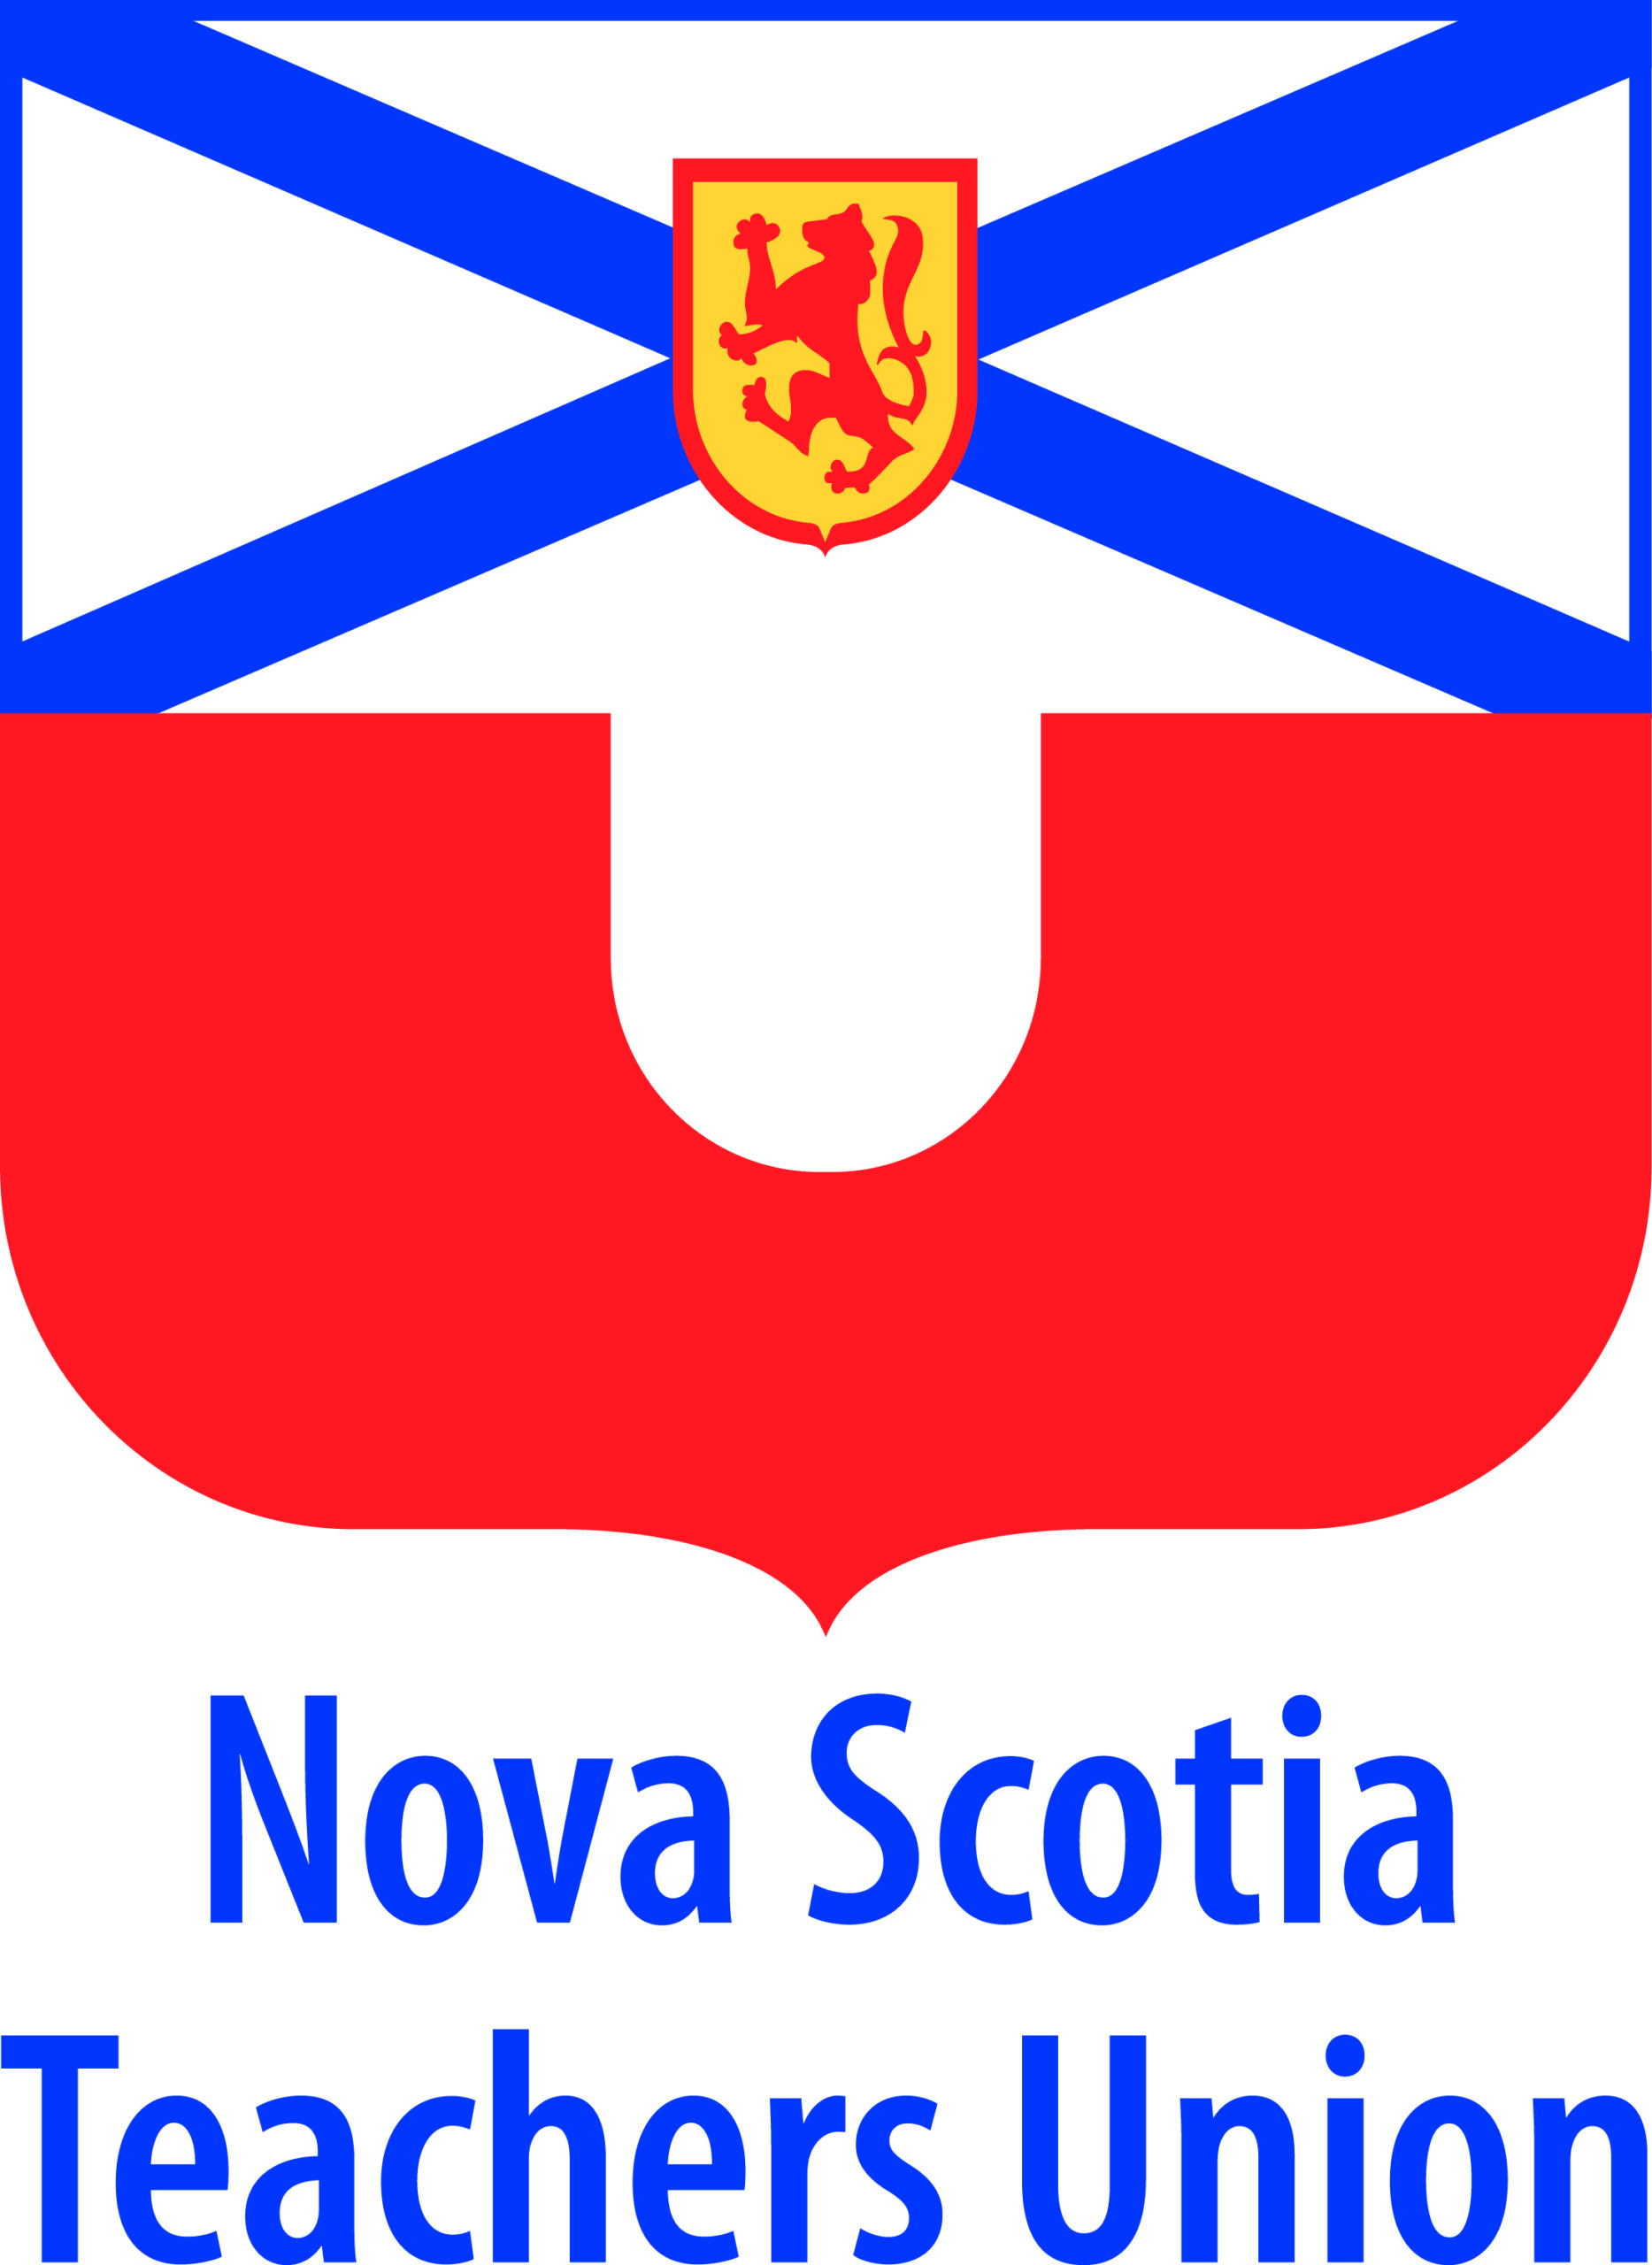 Nova Scotia Teachers' Union logo